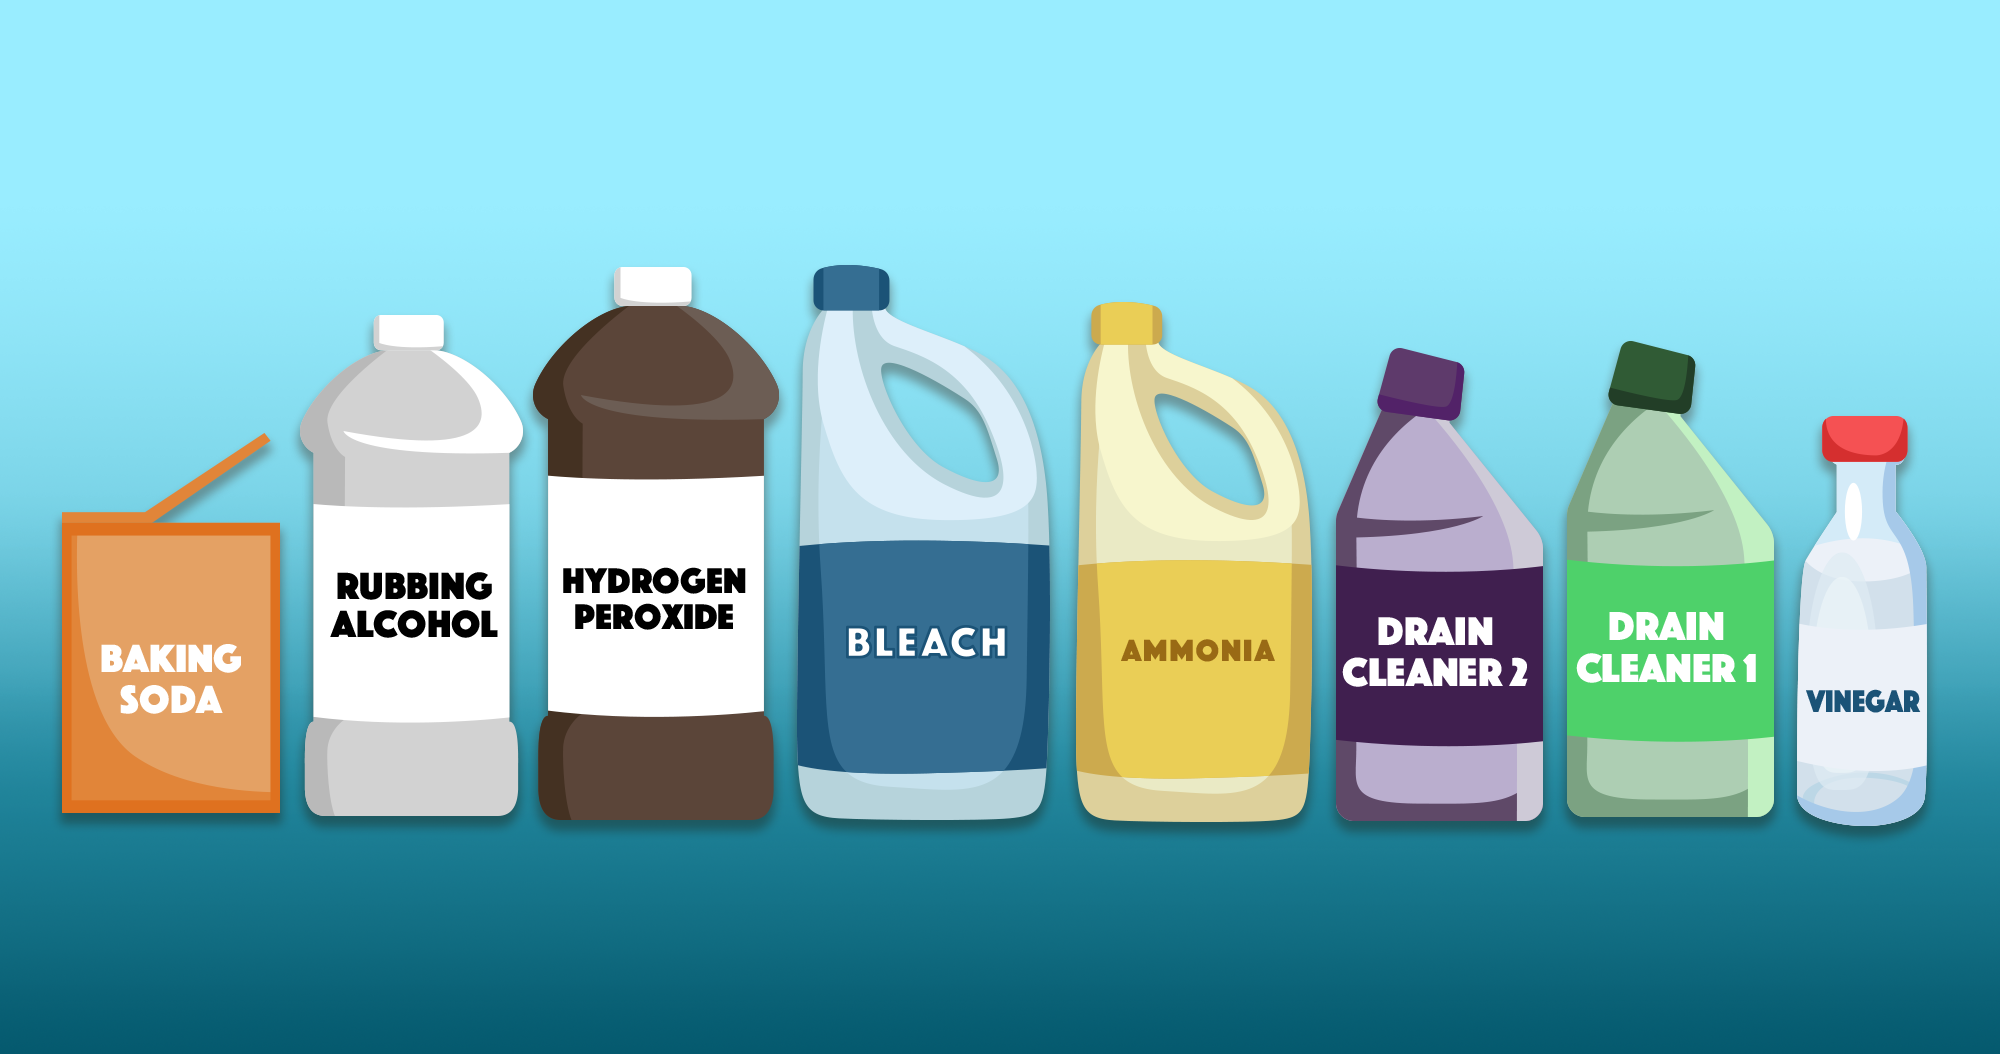 Household Disinfectants Could Be Making >> 6 Common Cleaning Products You Should Never Mix